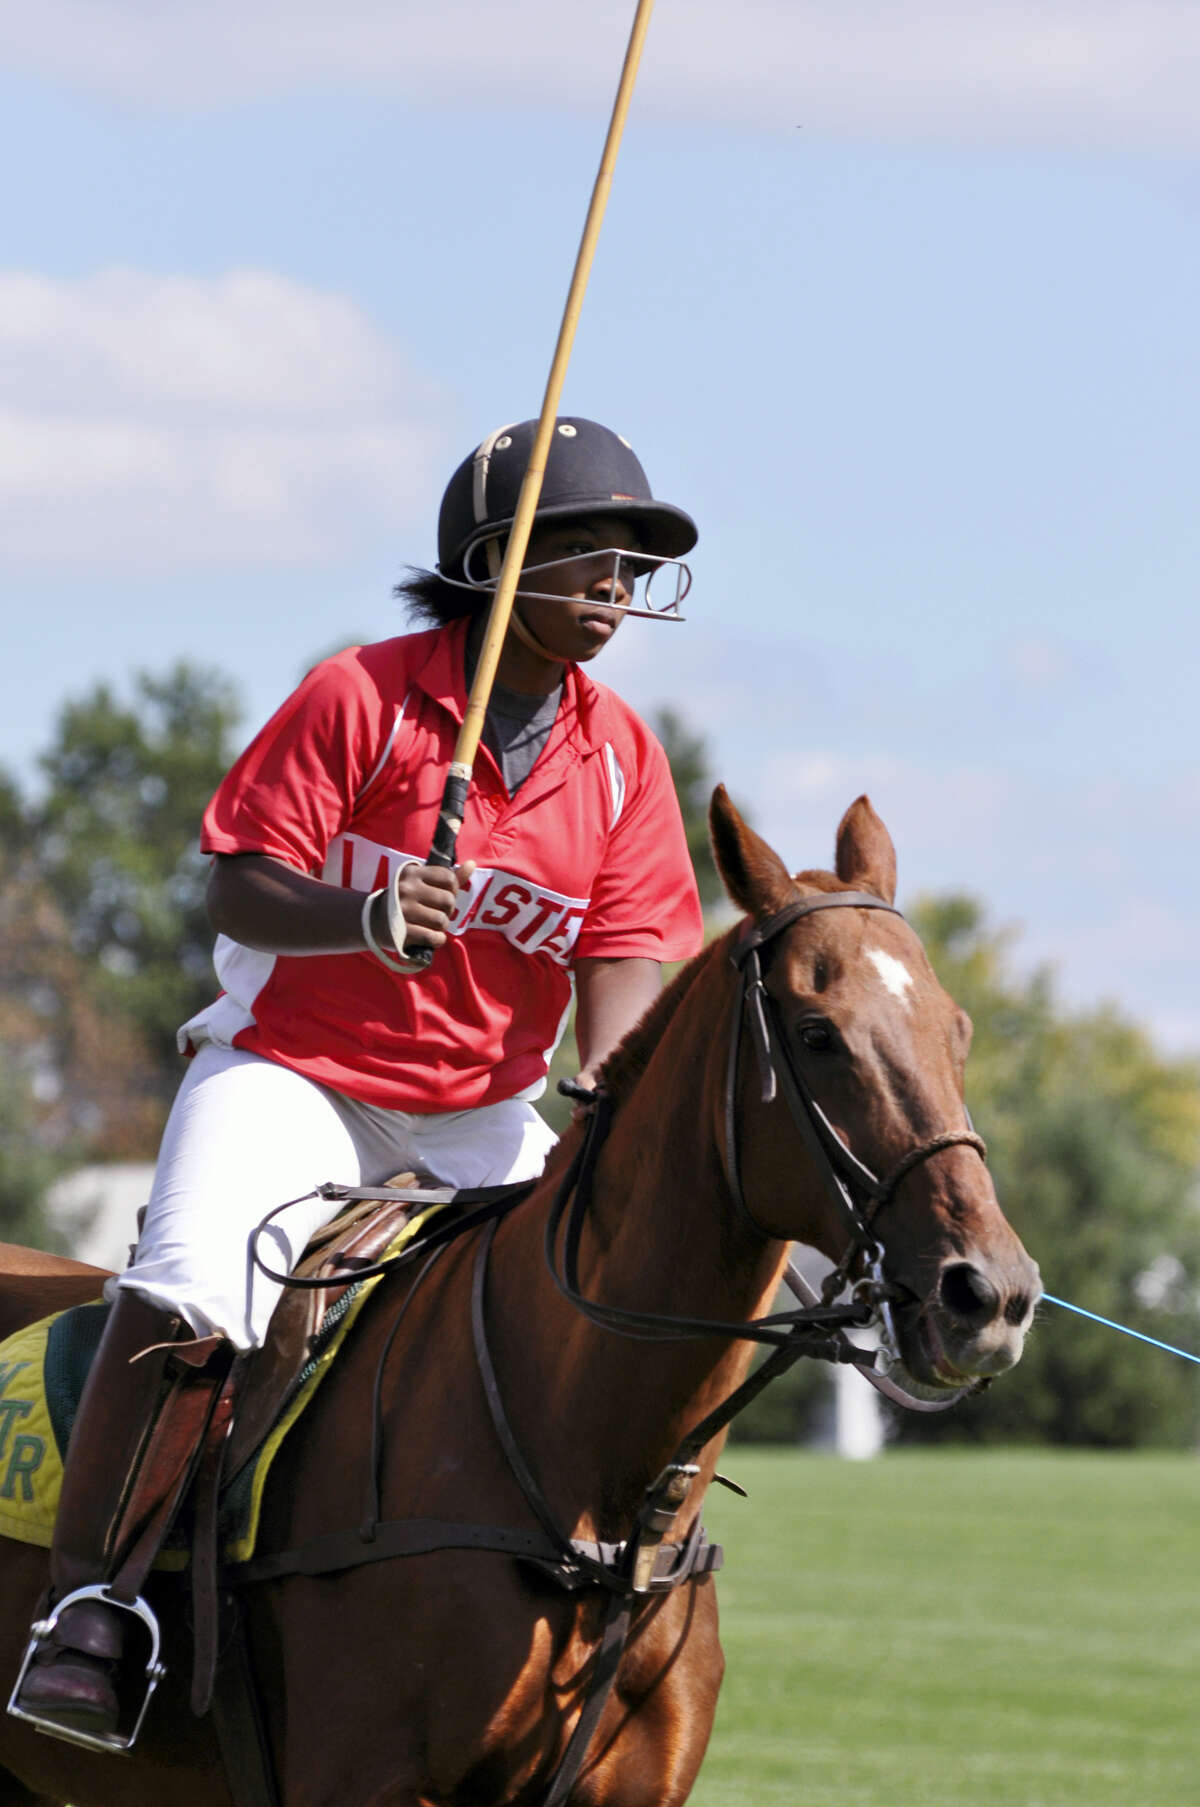 This undated photo provided by the Work to Ride program shows 19-year-old Shariah Harris playing polo at the Polo Club in Lancaster, Pa. Harris, who grew up in single-parent home just outside of west Philadelphia, is set to become the first African American woman to play in a top-tier U.S. polo event when she mounts up Friday, June 30, 2017, for the Postage Stamp Farm polo team in the Silver Cup at the tony Greenwich Polo Club in Connecticut.